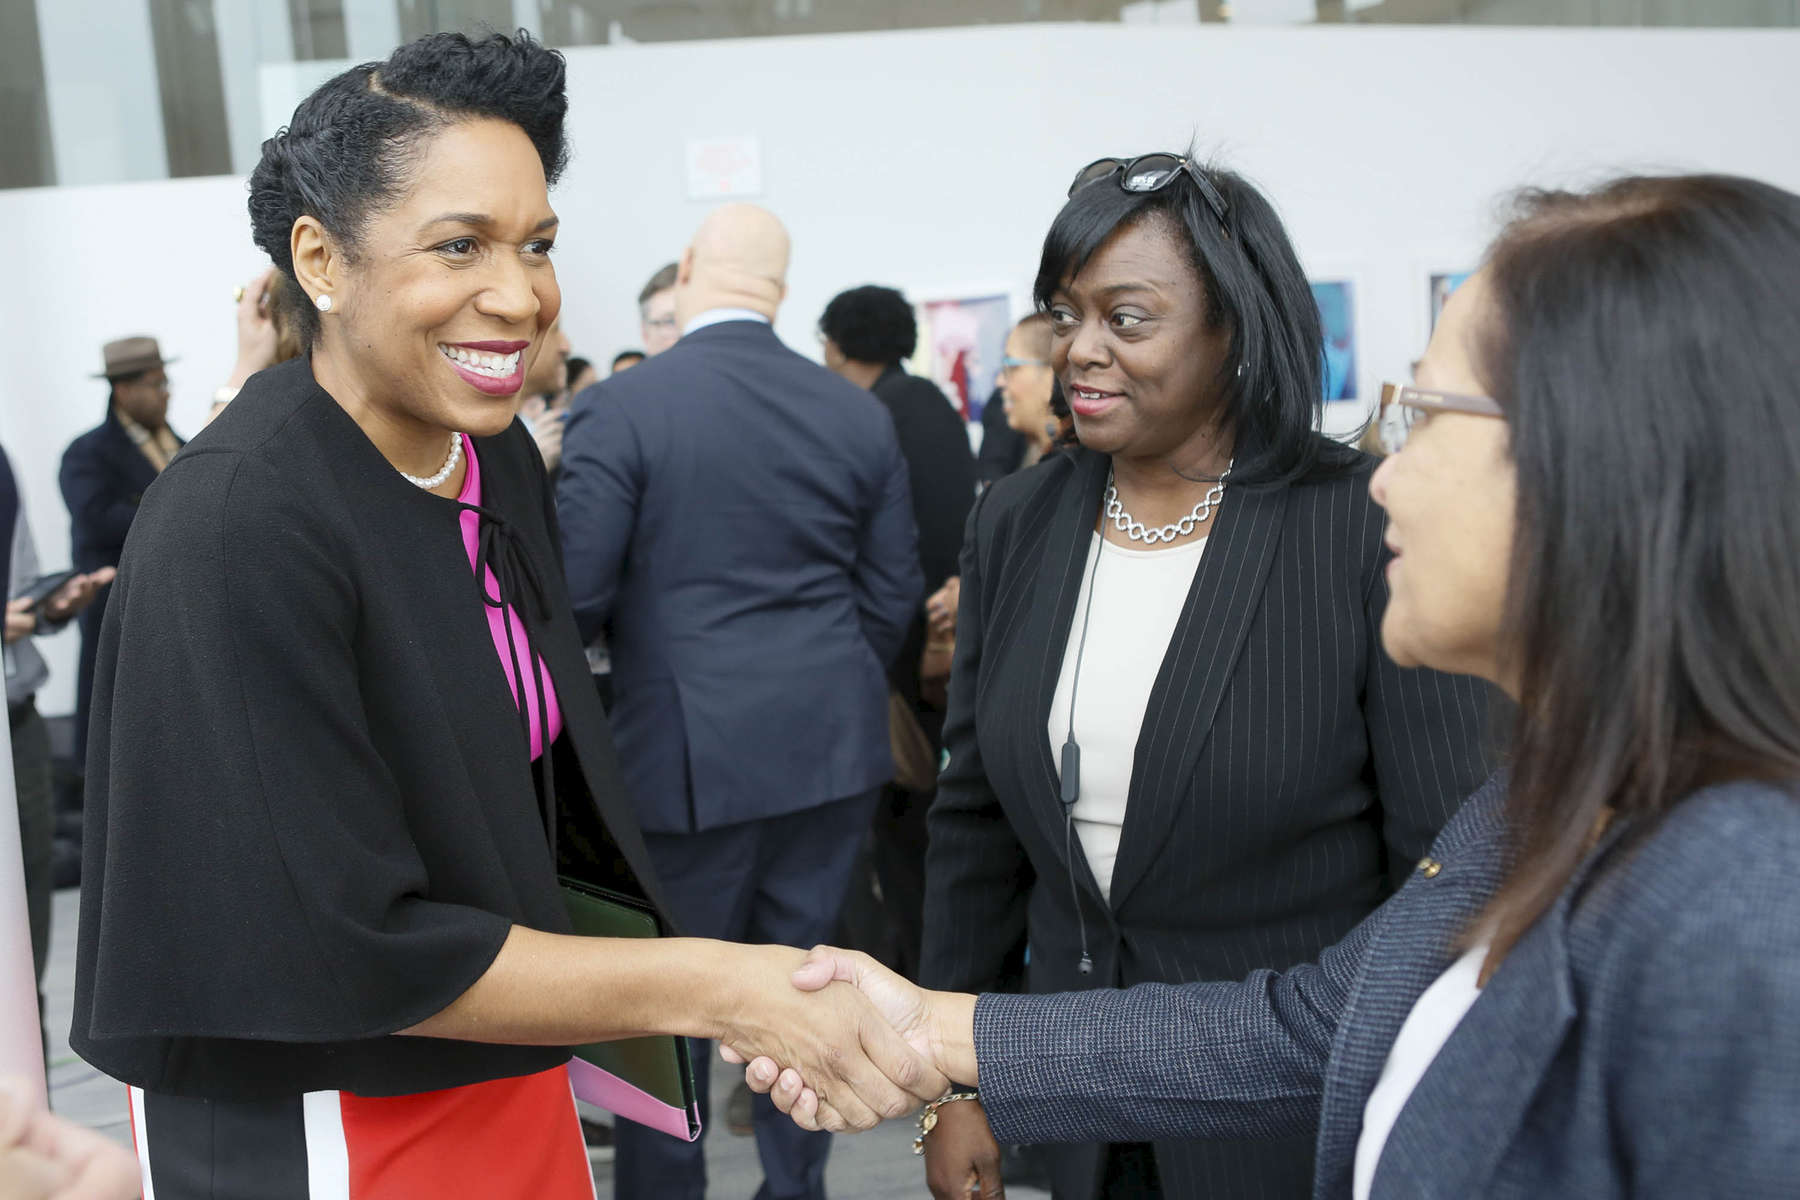 Lt. Governor Juliana Stratton greets people at the SMASH Illinois launch in Chicago, Illinois on January 24, 2019.